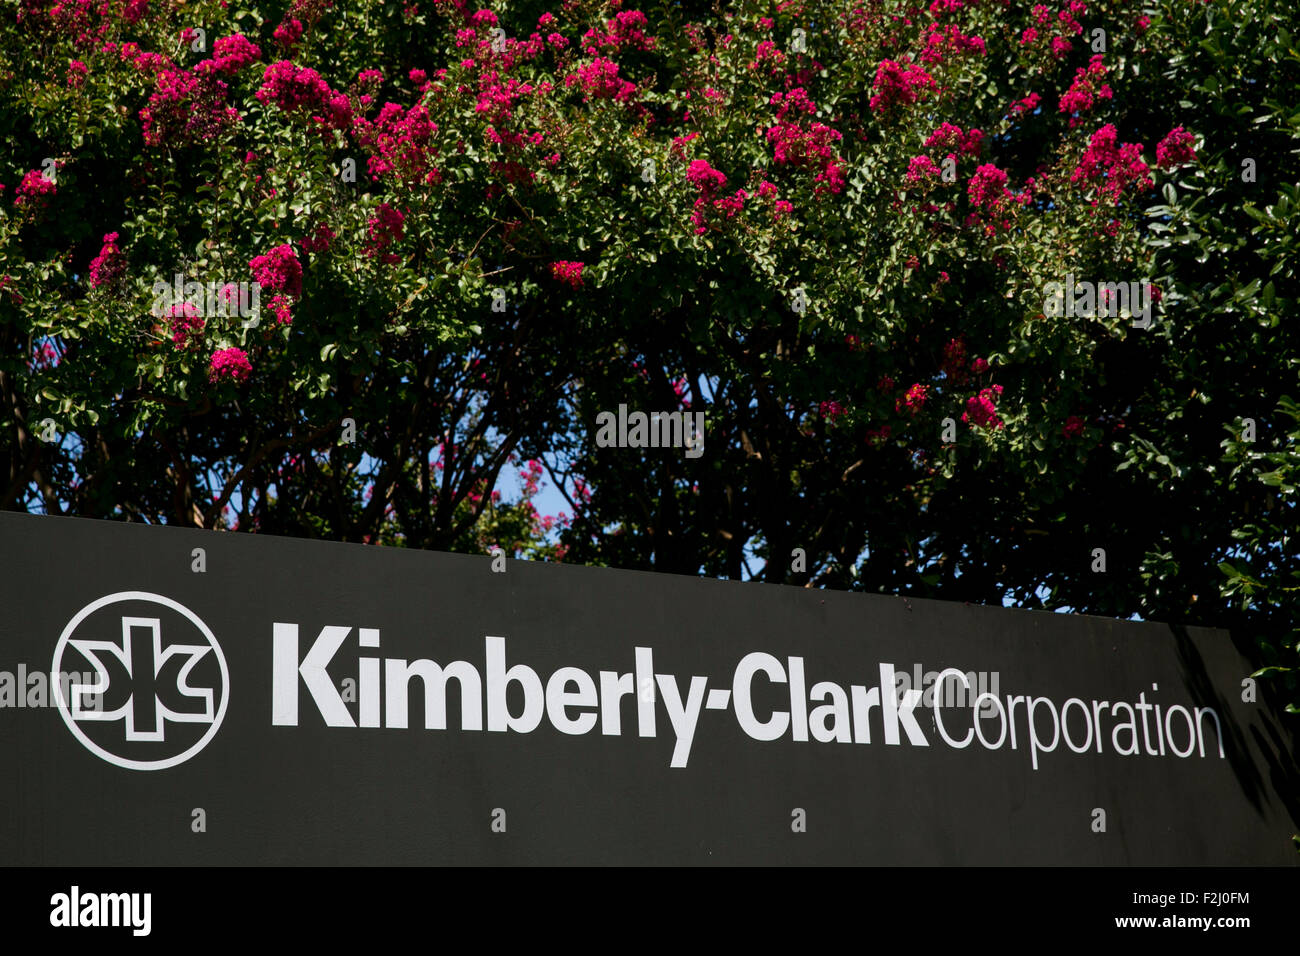 A logo sign outside of the headquarters of the Kimberly-Clark Corporation in Irving, Texas on September 13, 2015. - Stock Image